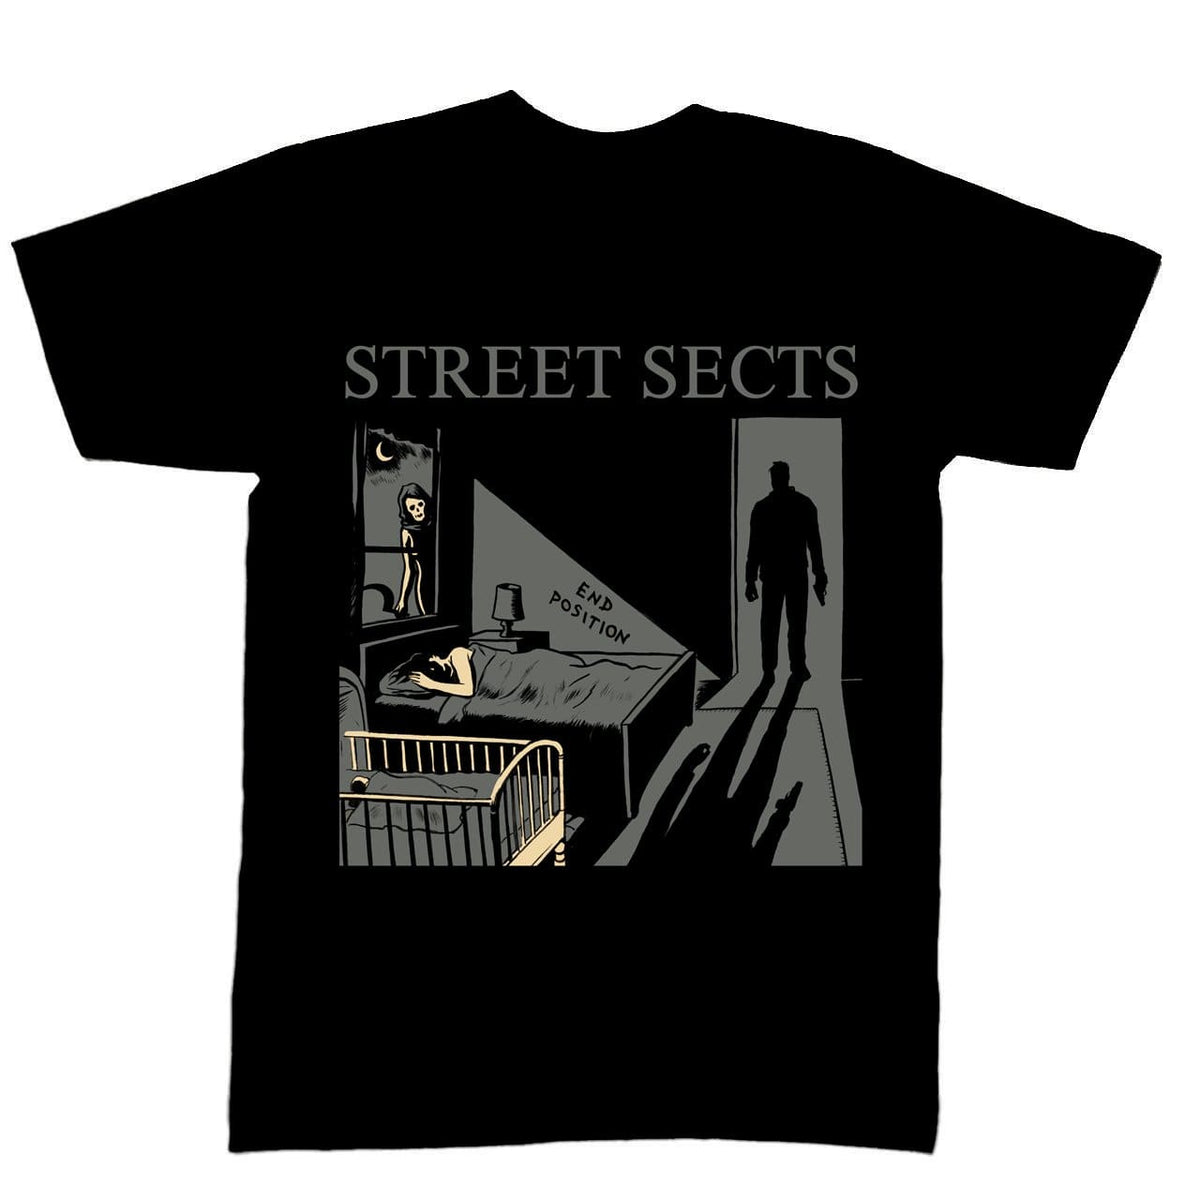 "Street Sects ""End Position"" Shirt"